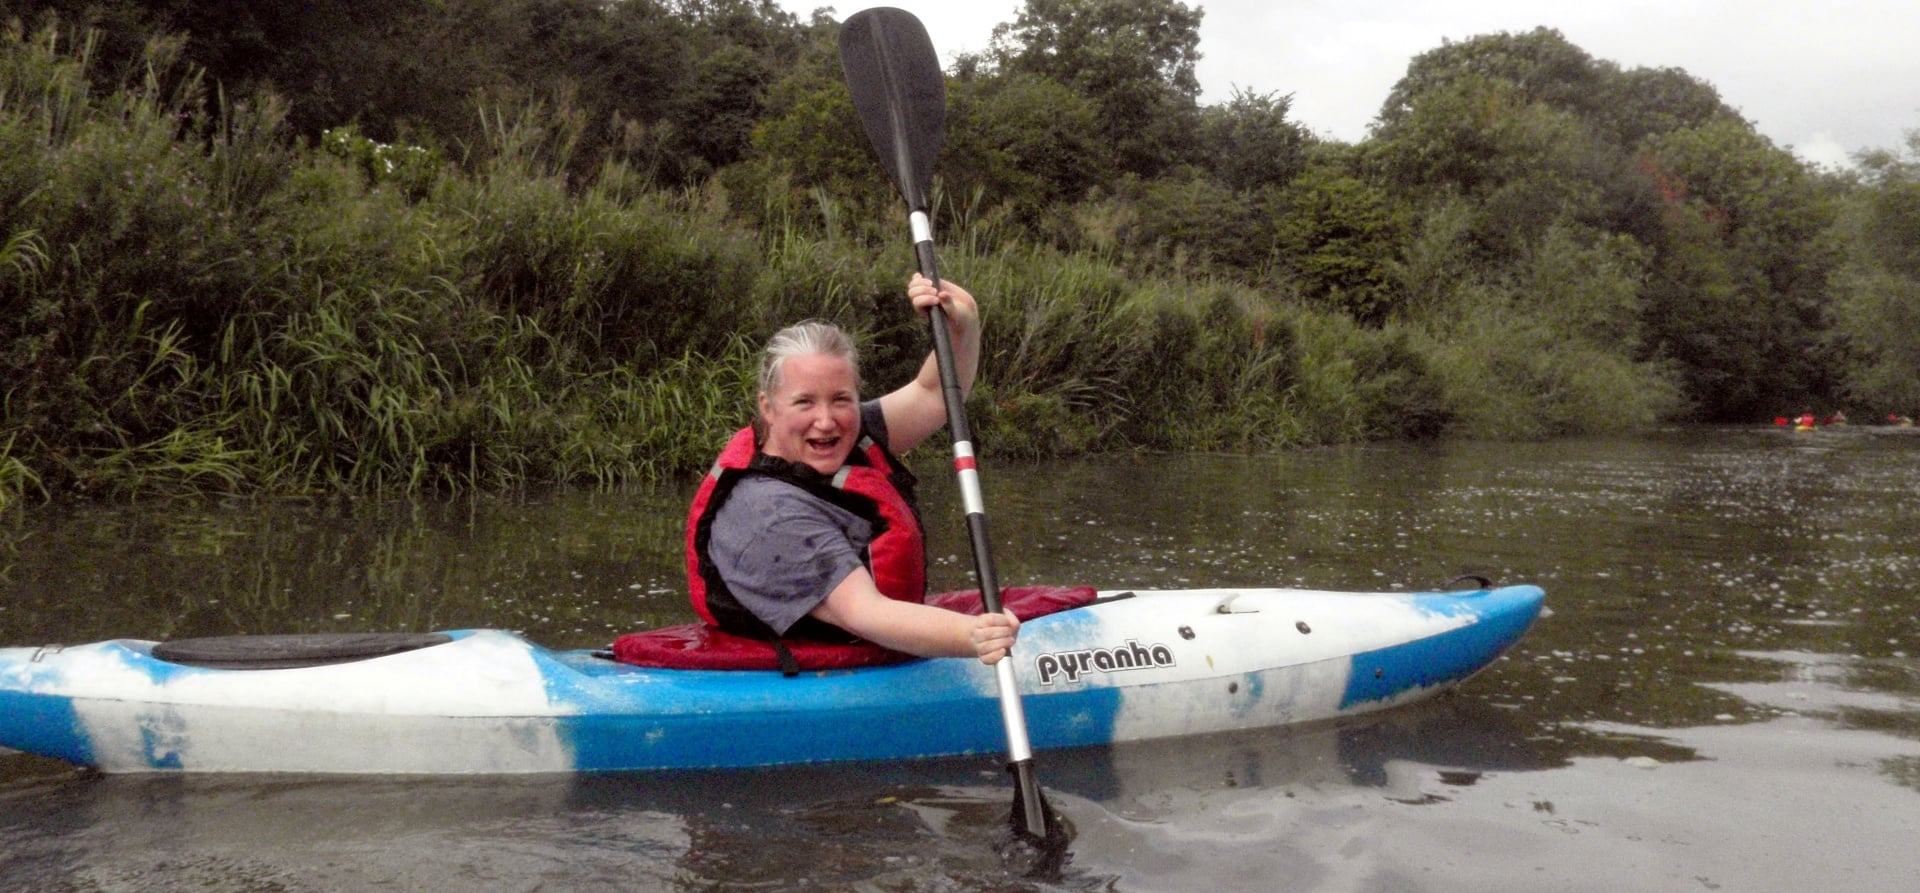 Half Day Kayaking Lesson - Warwickshire-3